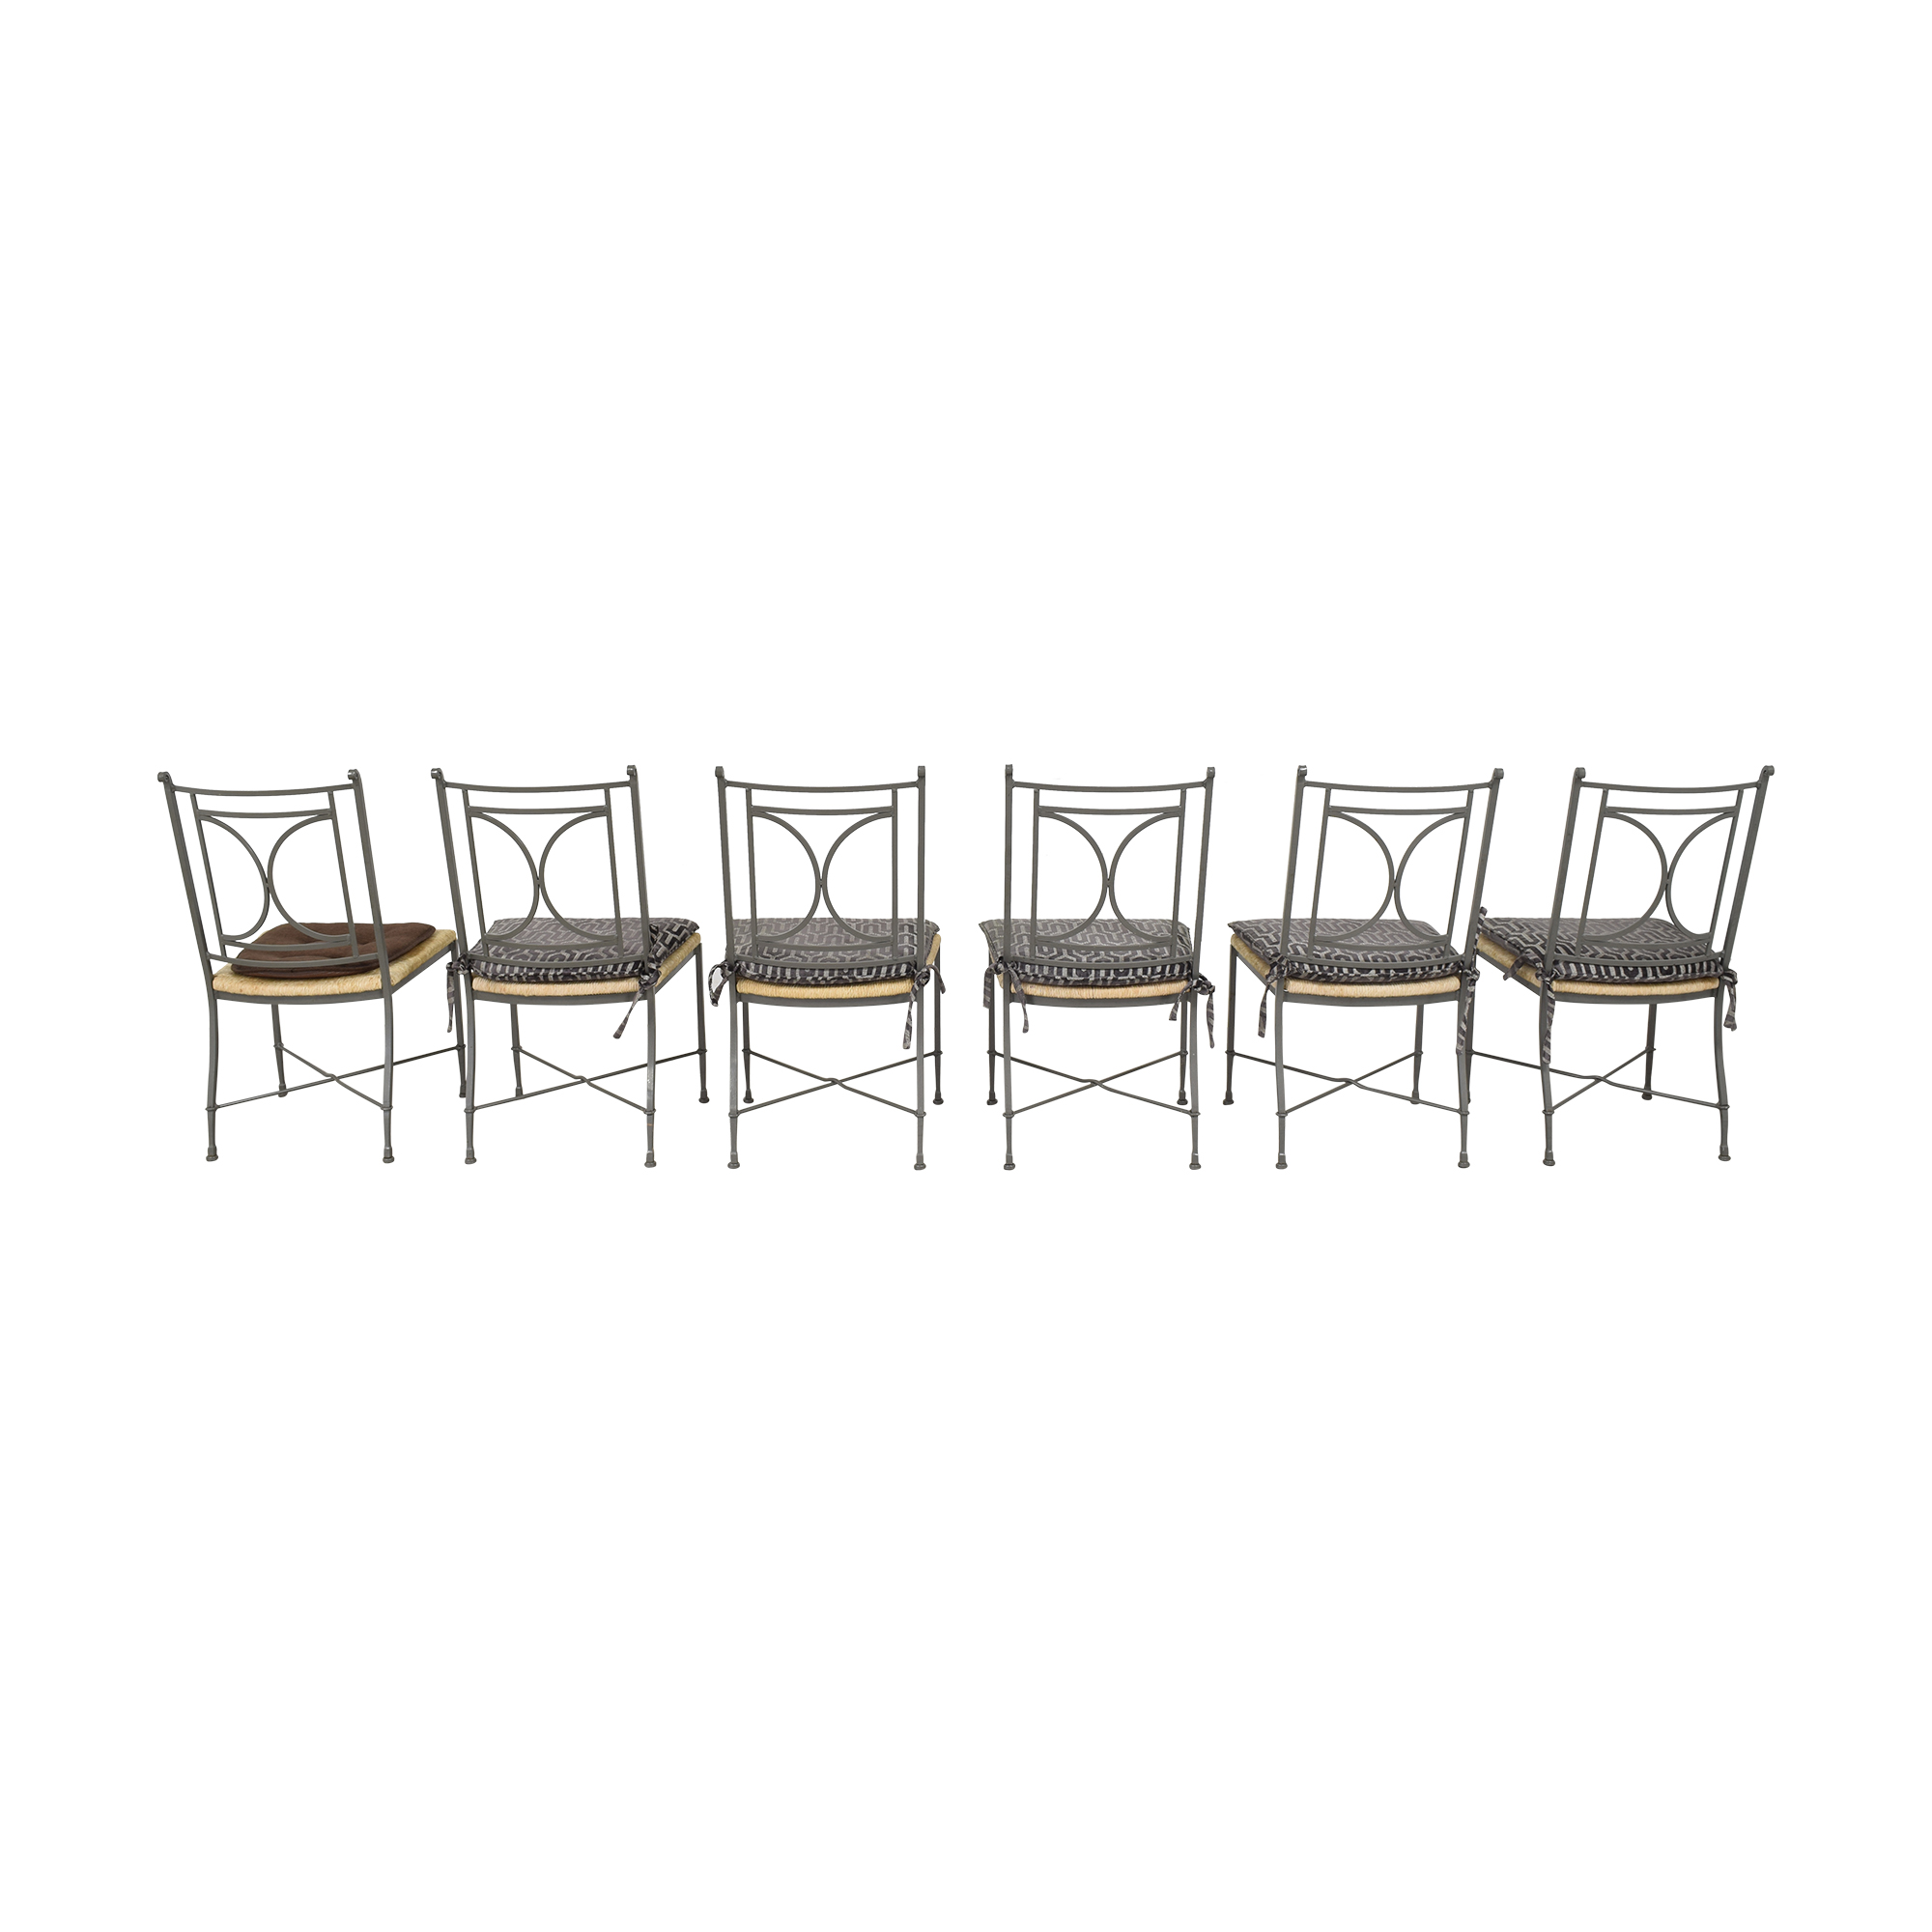 Charleston Forge Charleston Forge Woven Seat Dining Chairs with Cushions discount